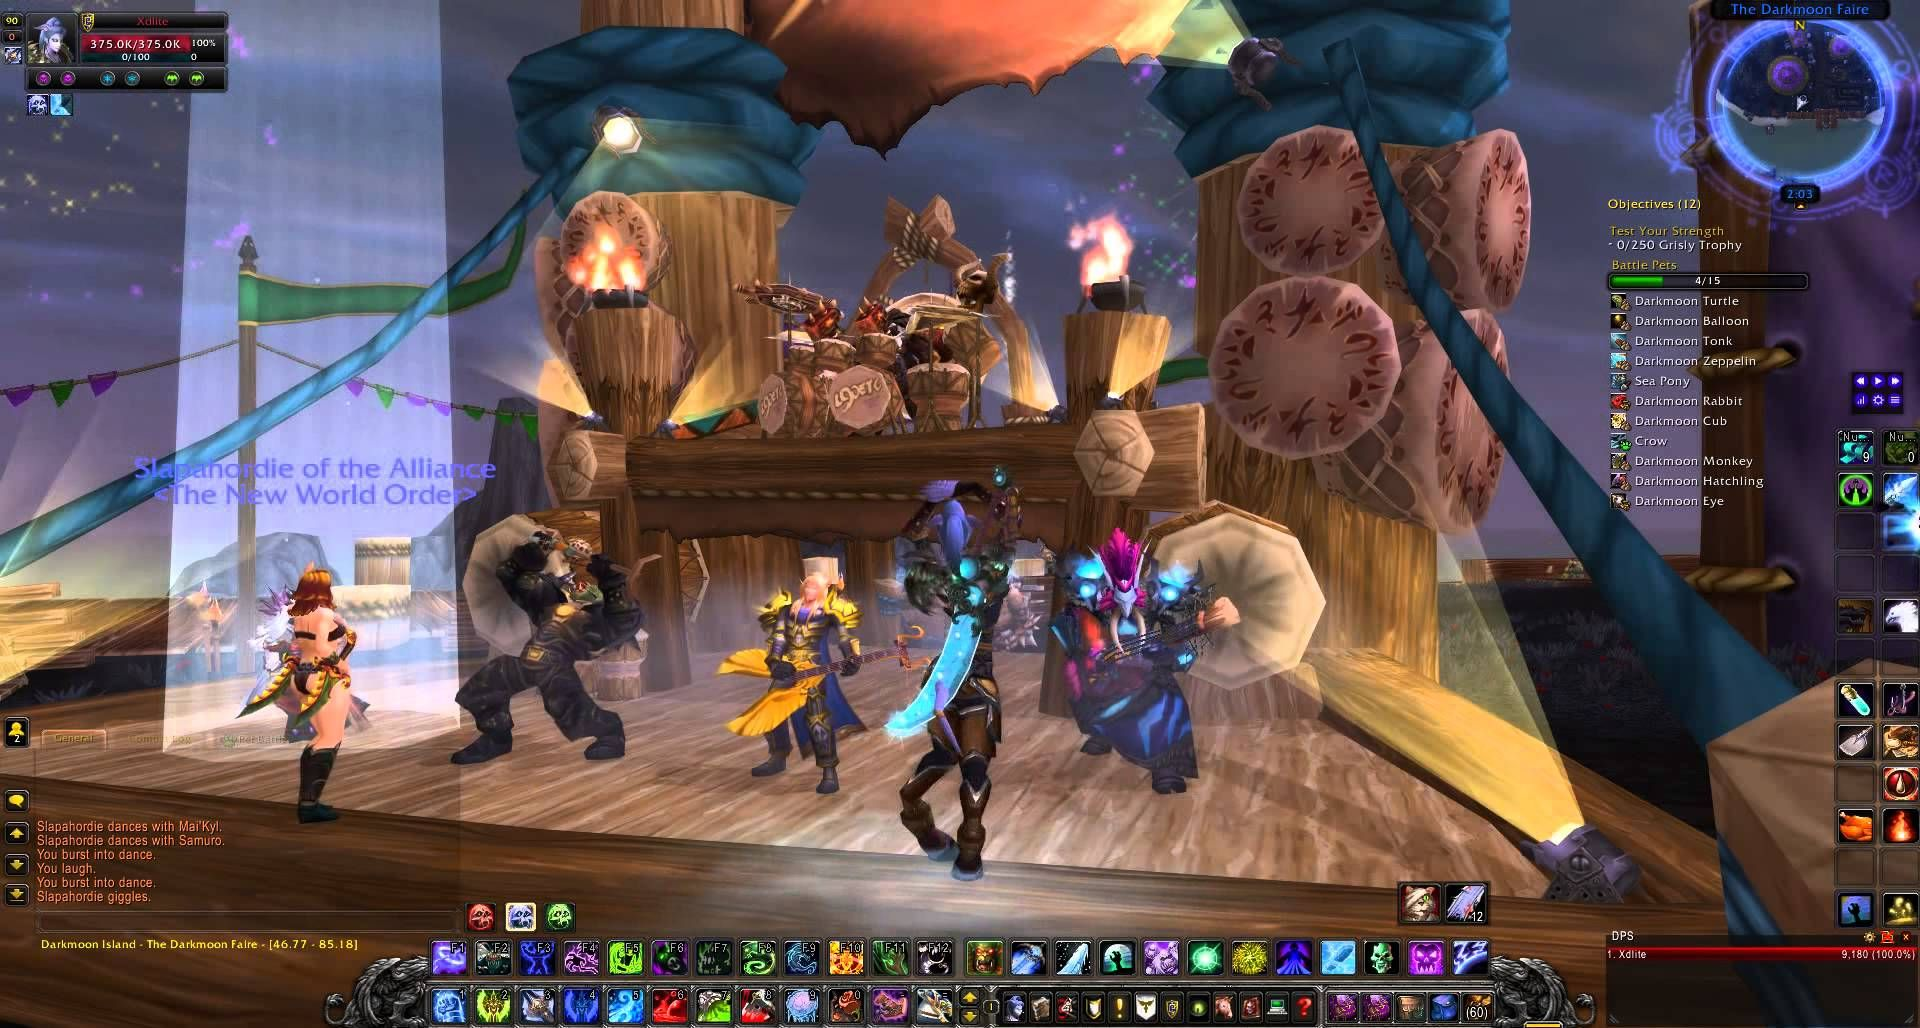 Darkmoon Faire Concert Level 90 Elite Tauren Chieftain Wow L90etc Tauren Chieftain Techno Music